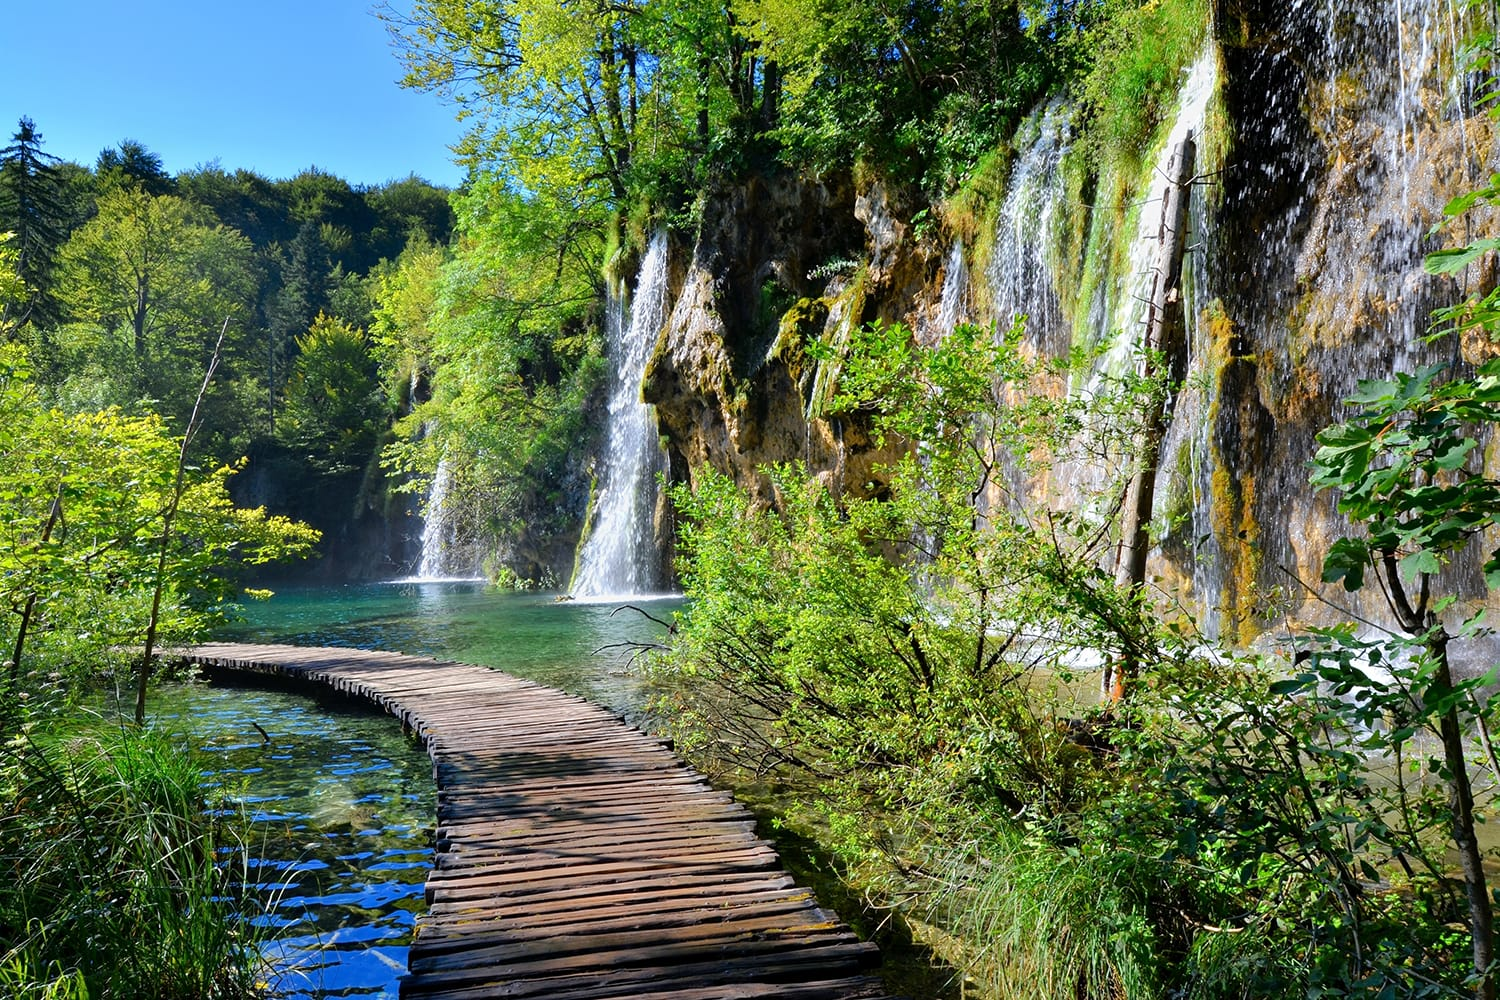 Boardwalk through the waterfalls of Plitvice Lakes National Park, Croatia